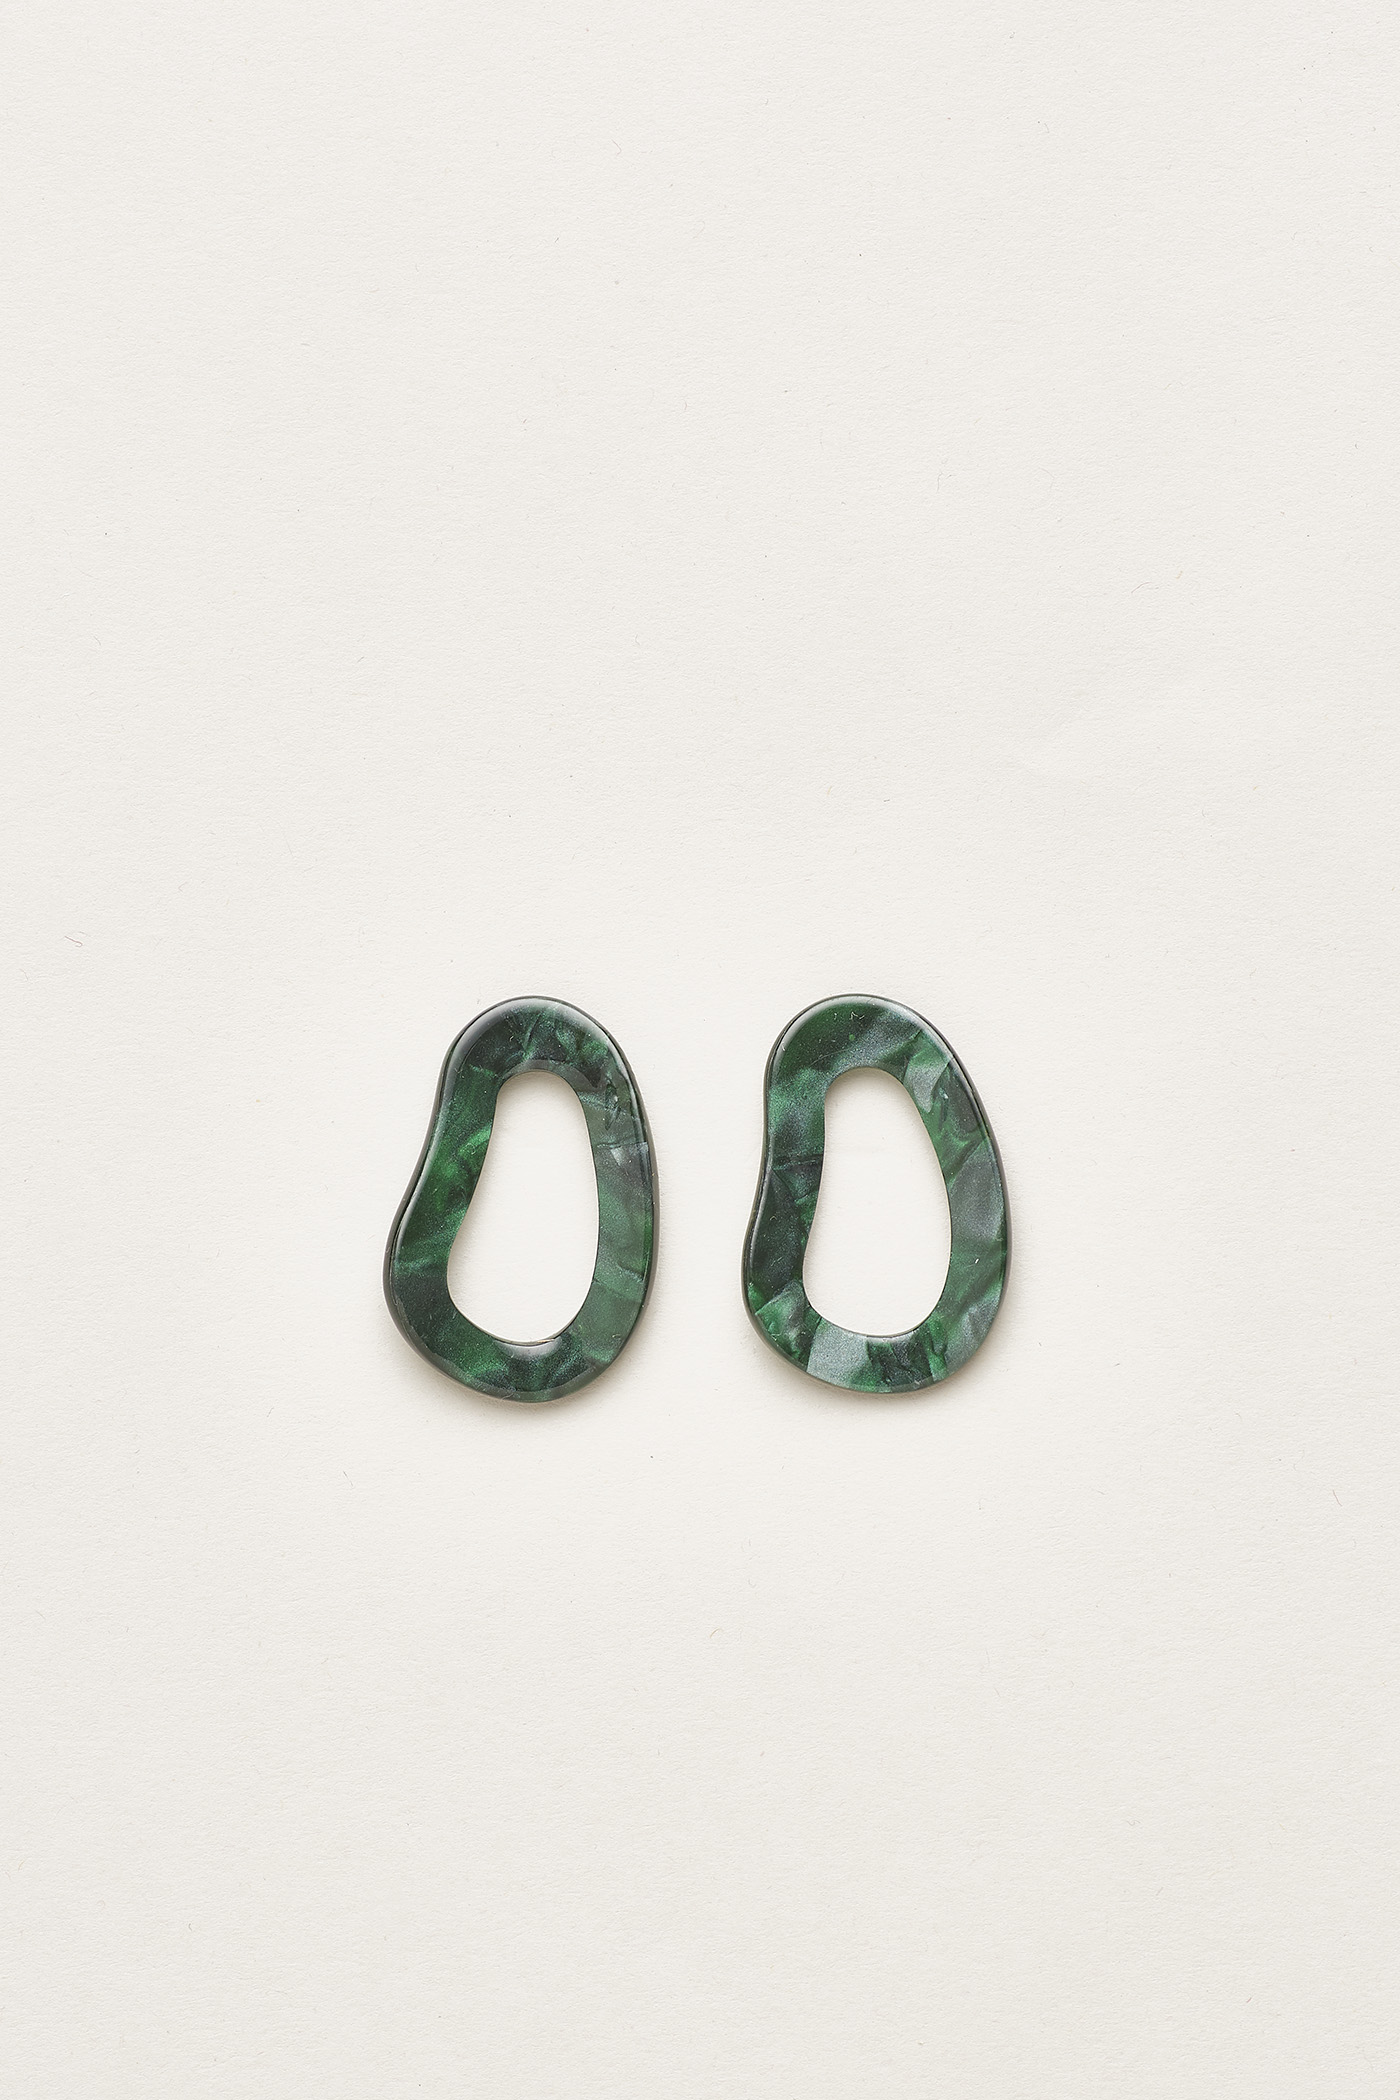 Kaleo Molten Resin Earrings